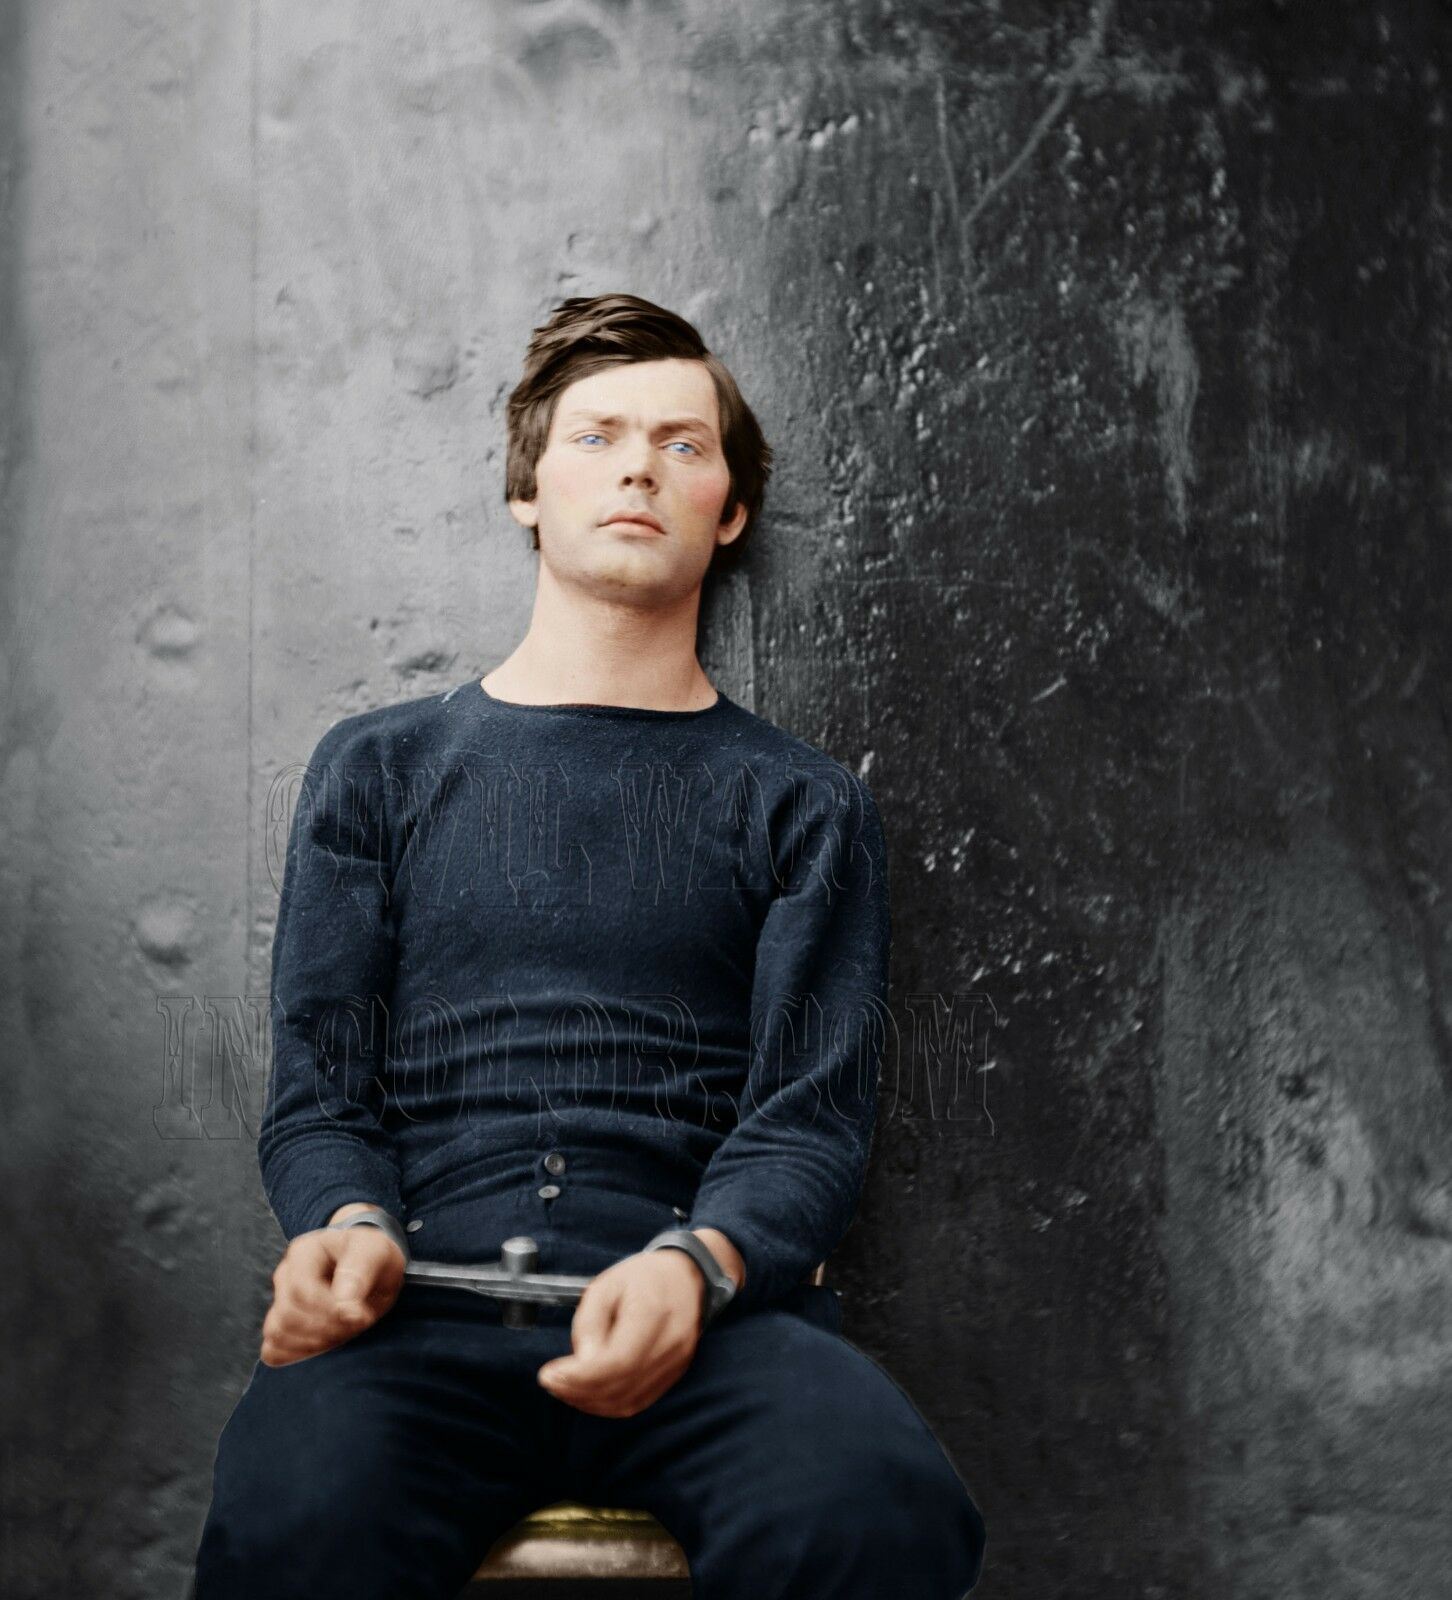 Lewis Powell Assassination Conspirator Seward Seward Seward Farbe Tinted photo Civil War 04208 c9ac21